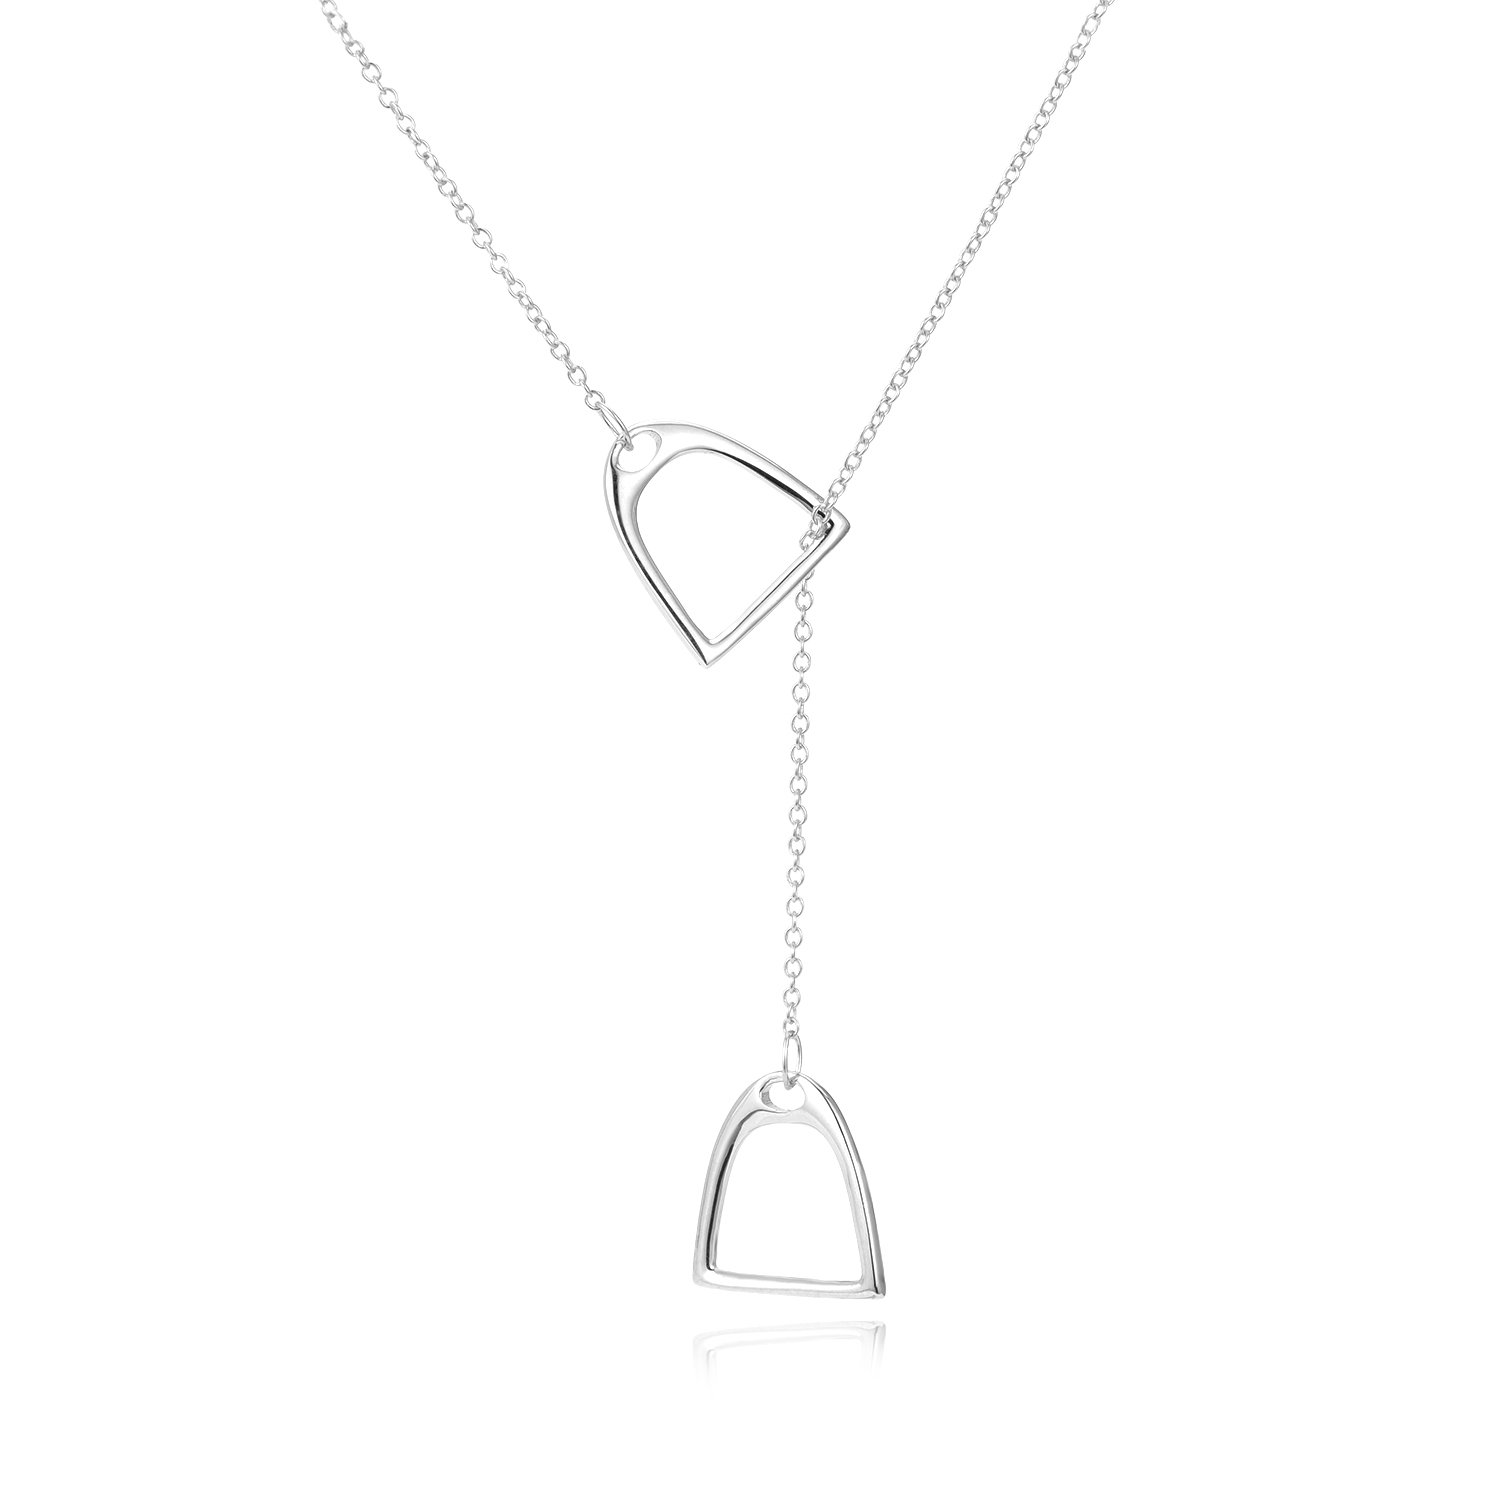 YFN Jewelry 925 Sterling Silver Simple Double Horse Stirrup Lariat Necklace Gift Birthday Day Jewelry 18'' for Mom Women Wife by YFN